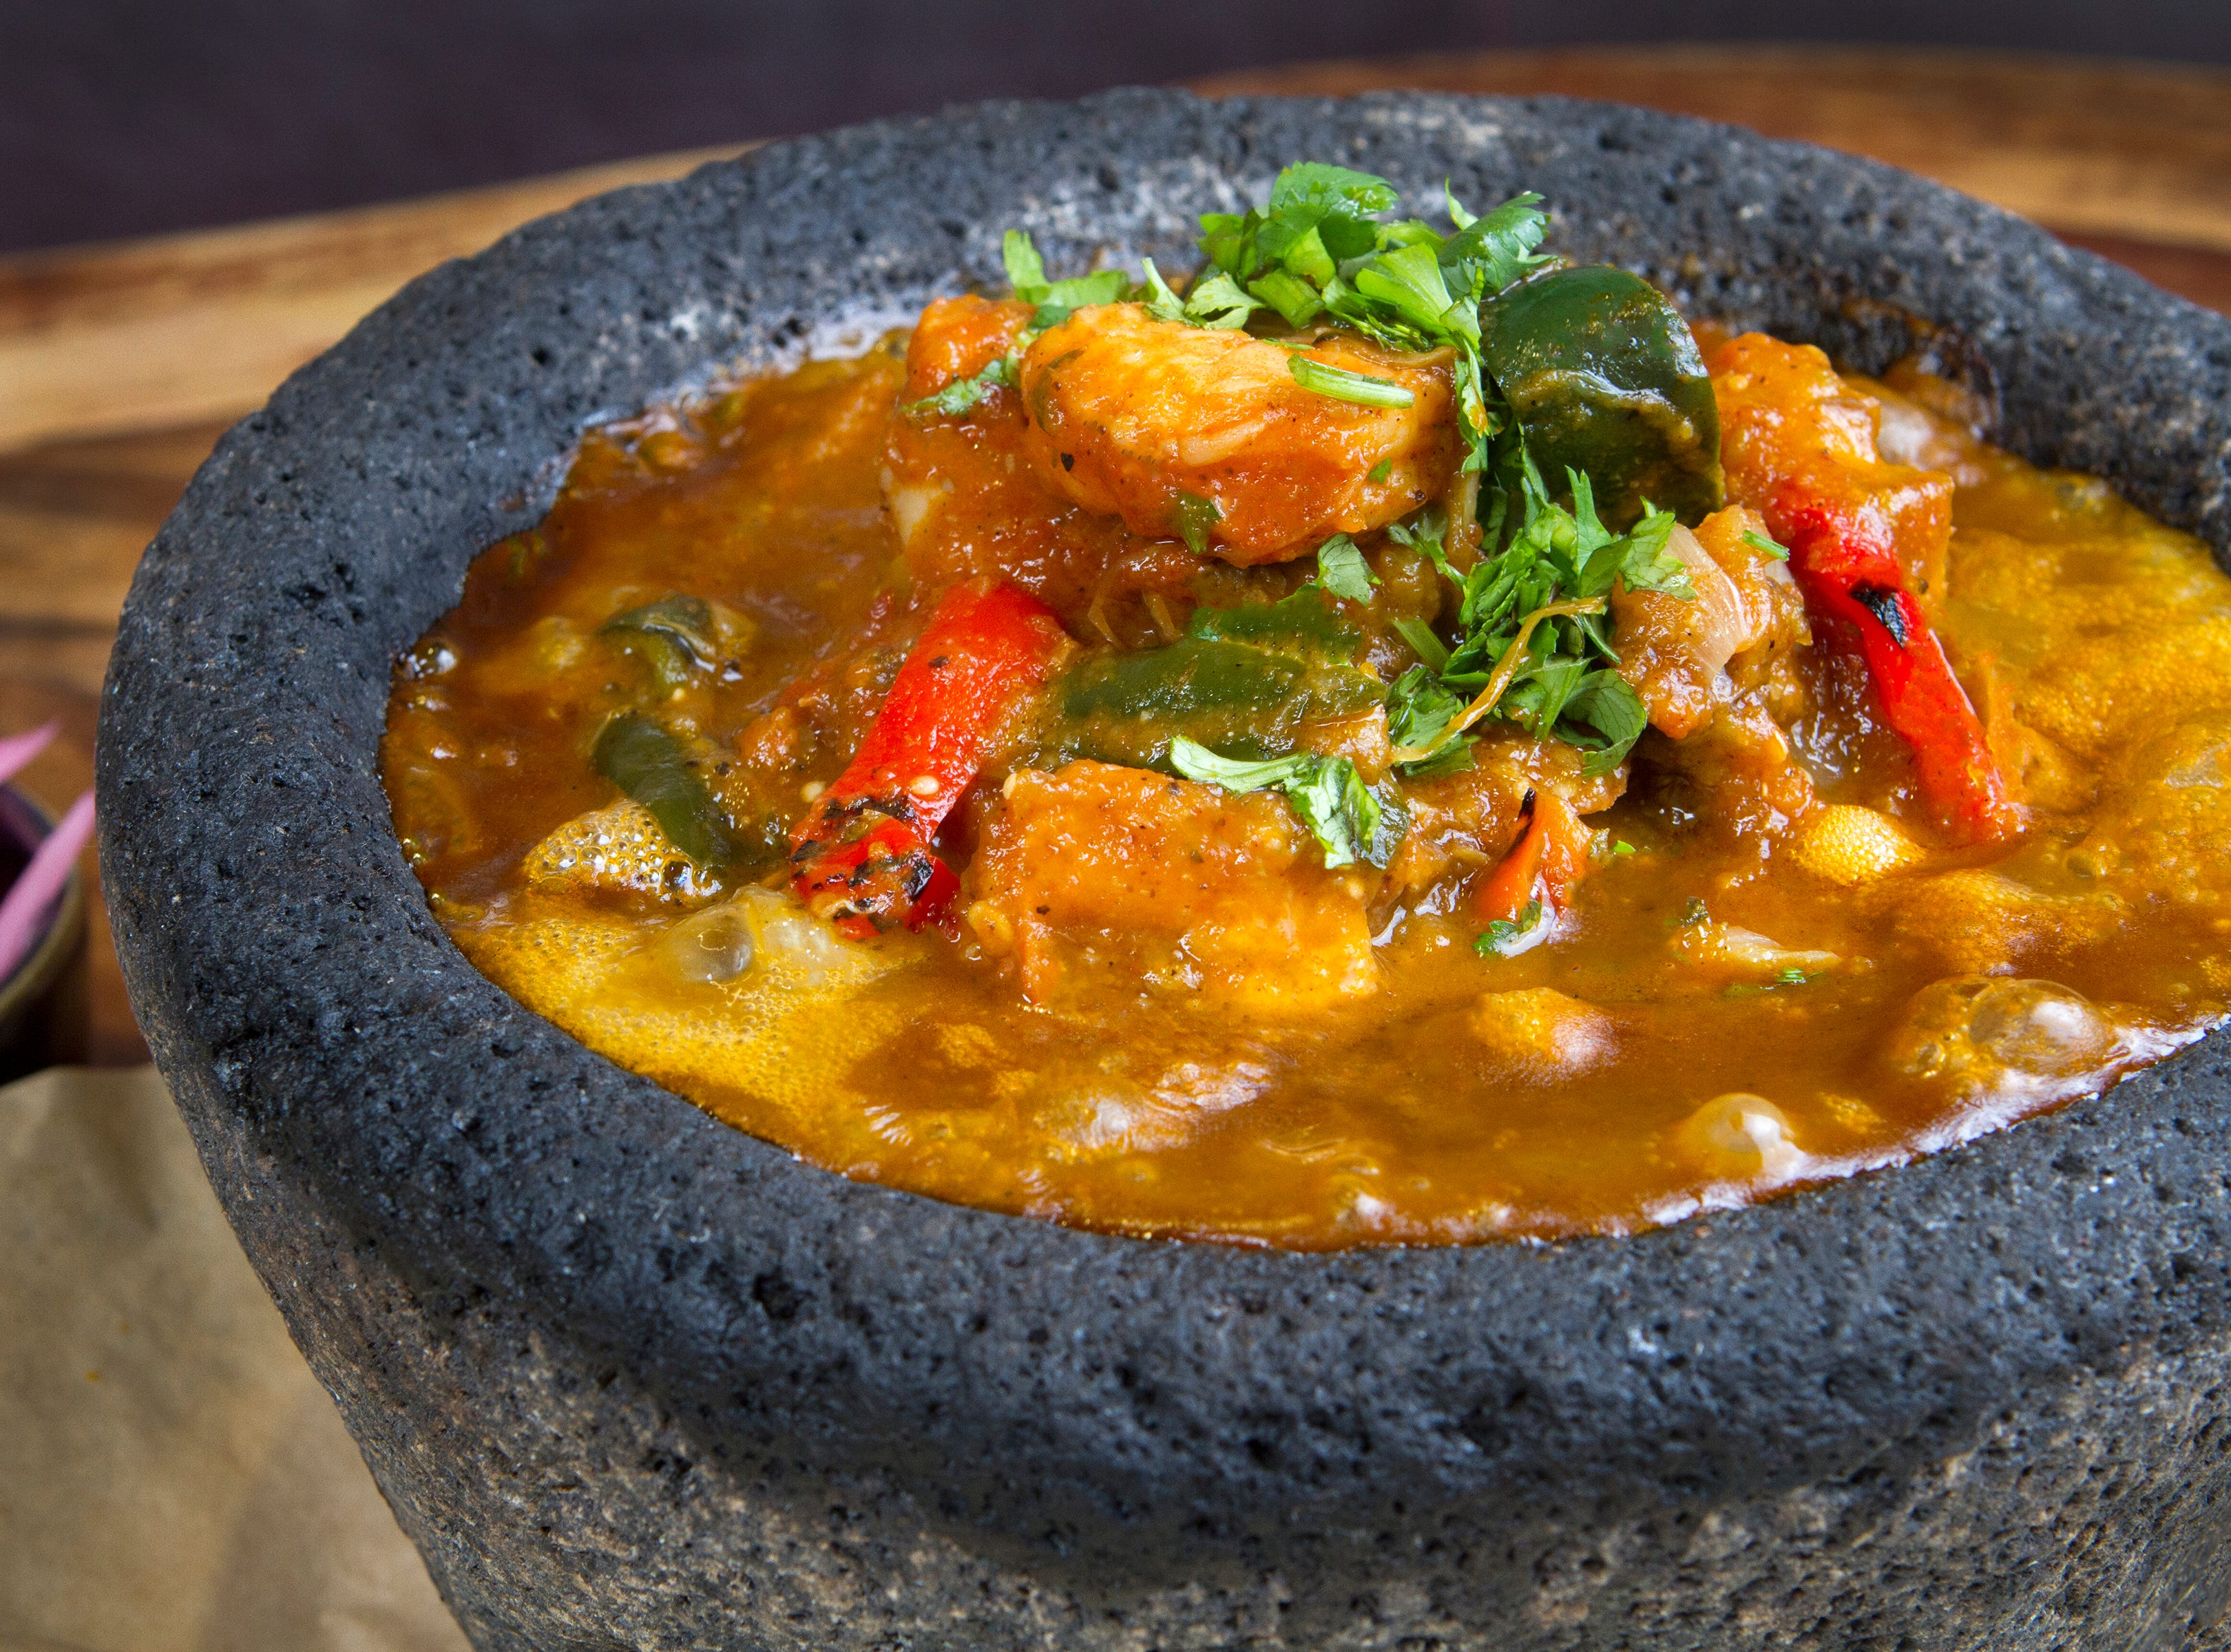 Molcajetes at Rocco's Tacos & Tequila Bar are served sizzling in a traditional lava rock molcajete.